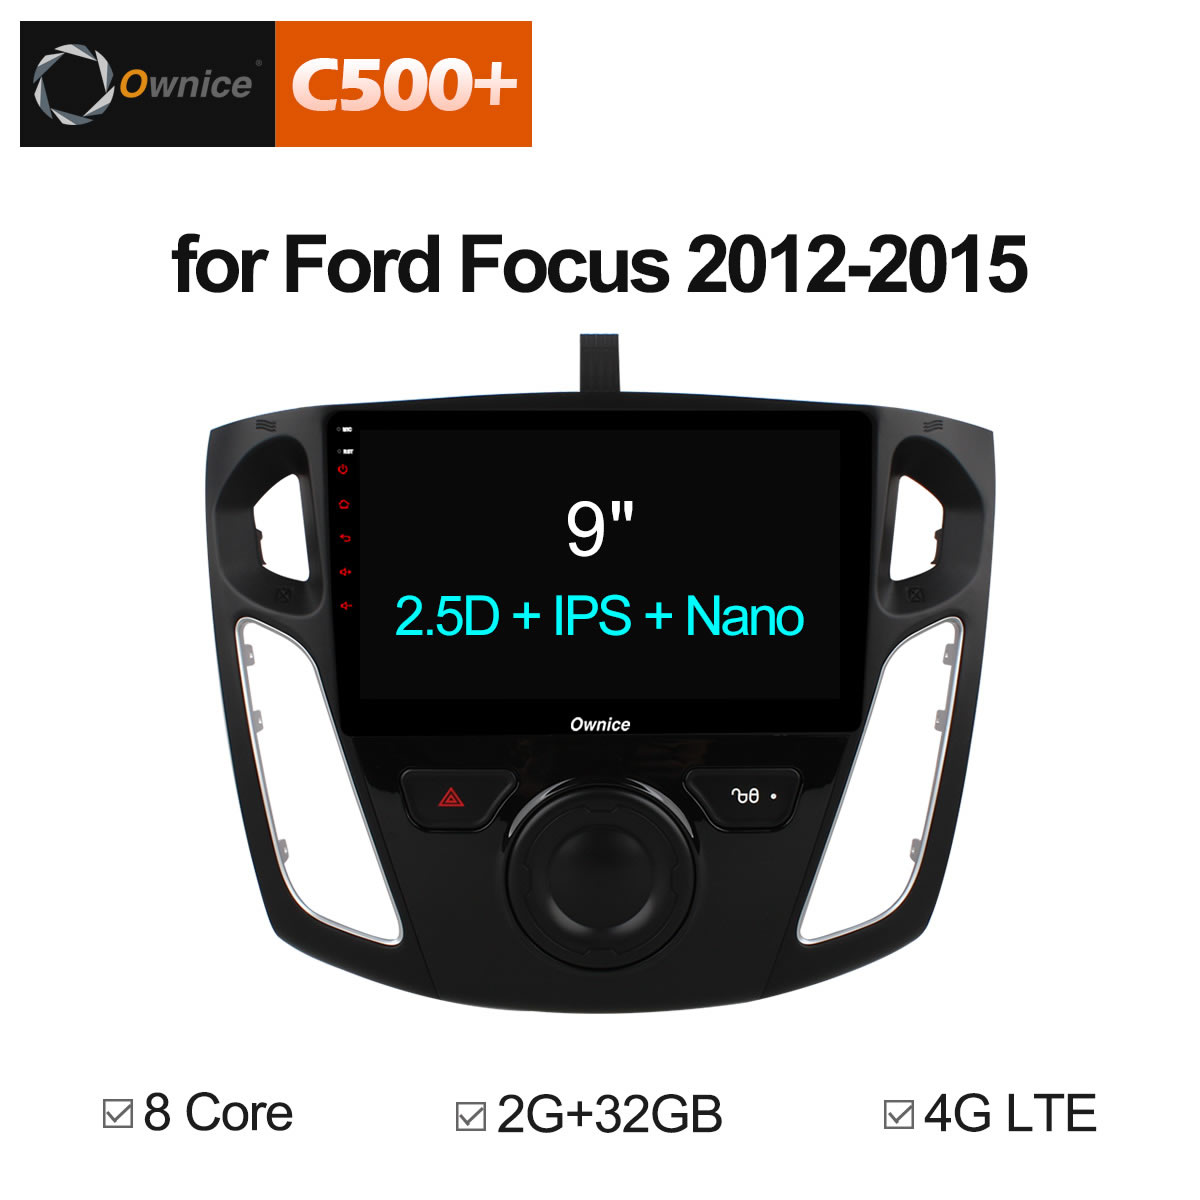 Ownice C500+ G10 Octa 8 Core Android 8.1 Car Radio Player GPS Navi For ford 2012 - 2015 Focus 3 Support DVD 4G Sim Car DAB+ TPMS android 6 0 1 octa core capacitive car pc dvd radio gps for ford focus fusion explorer expedition f150 f500 escape edge mustang